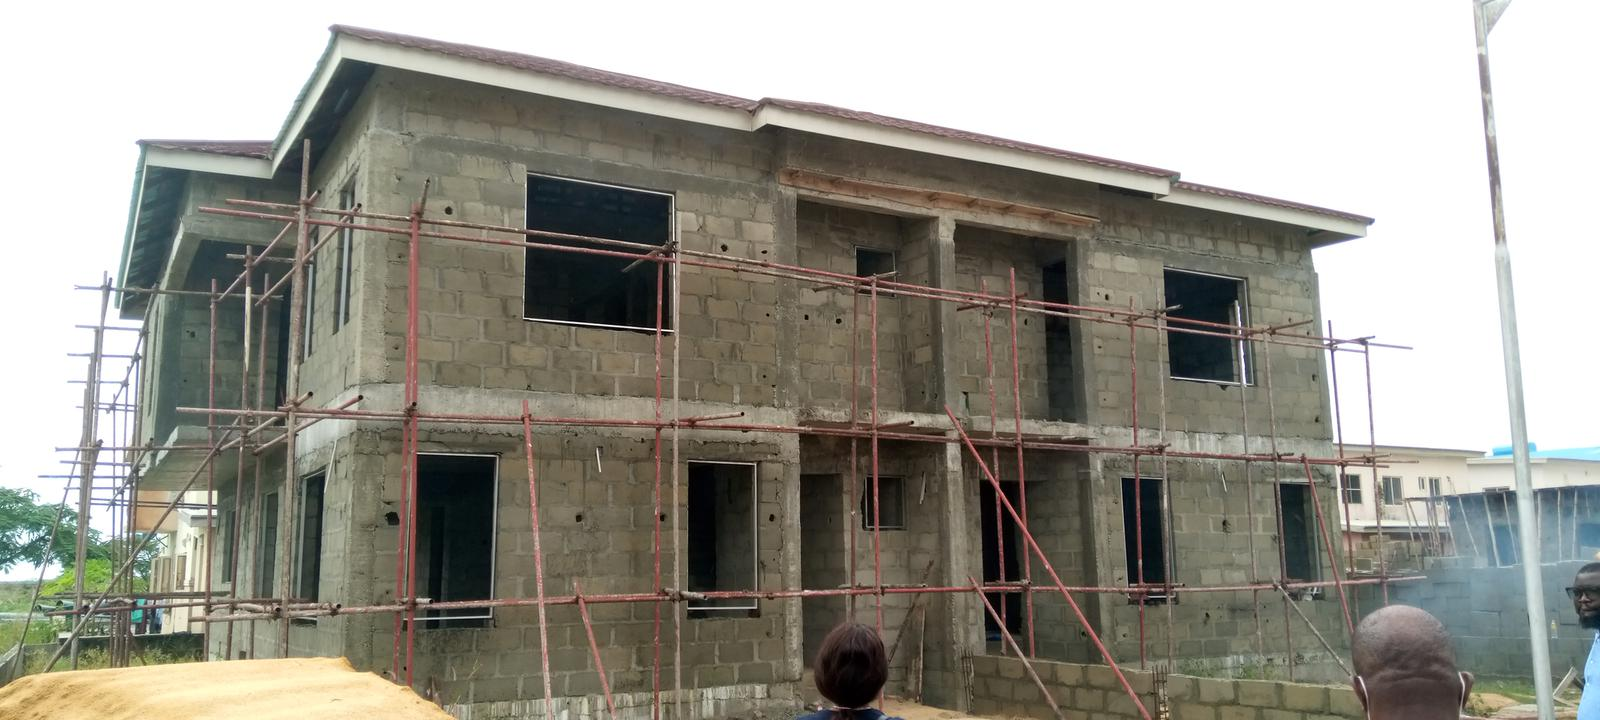 4 Bedroom Semi Detached House For Sale At Sapphire Garden | Houses & Apartments For Sale for sale in Lekki Expressway, Lekki, Nigeria